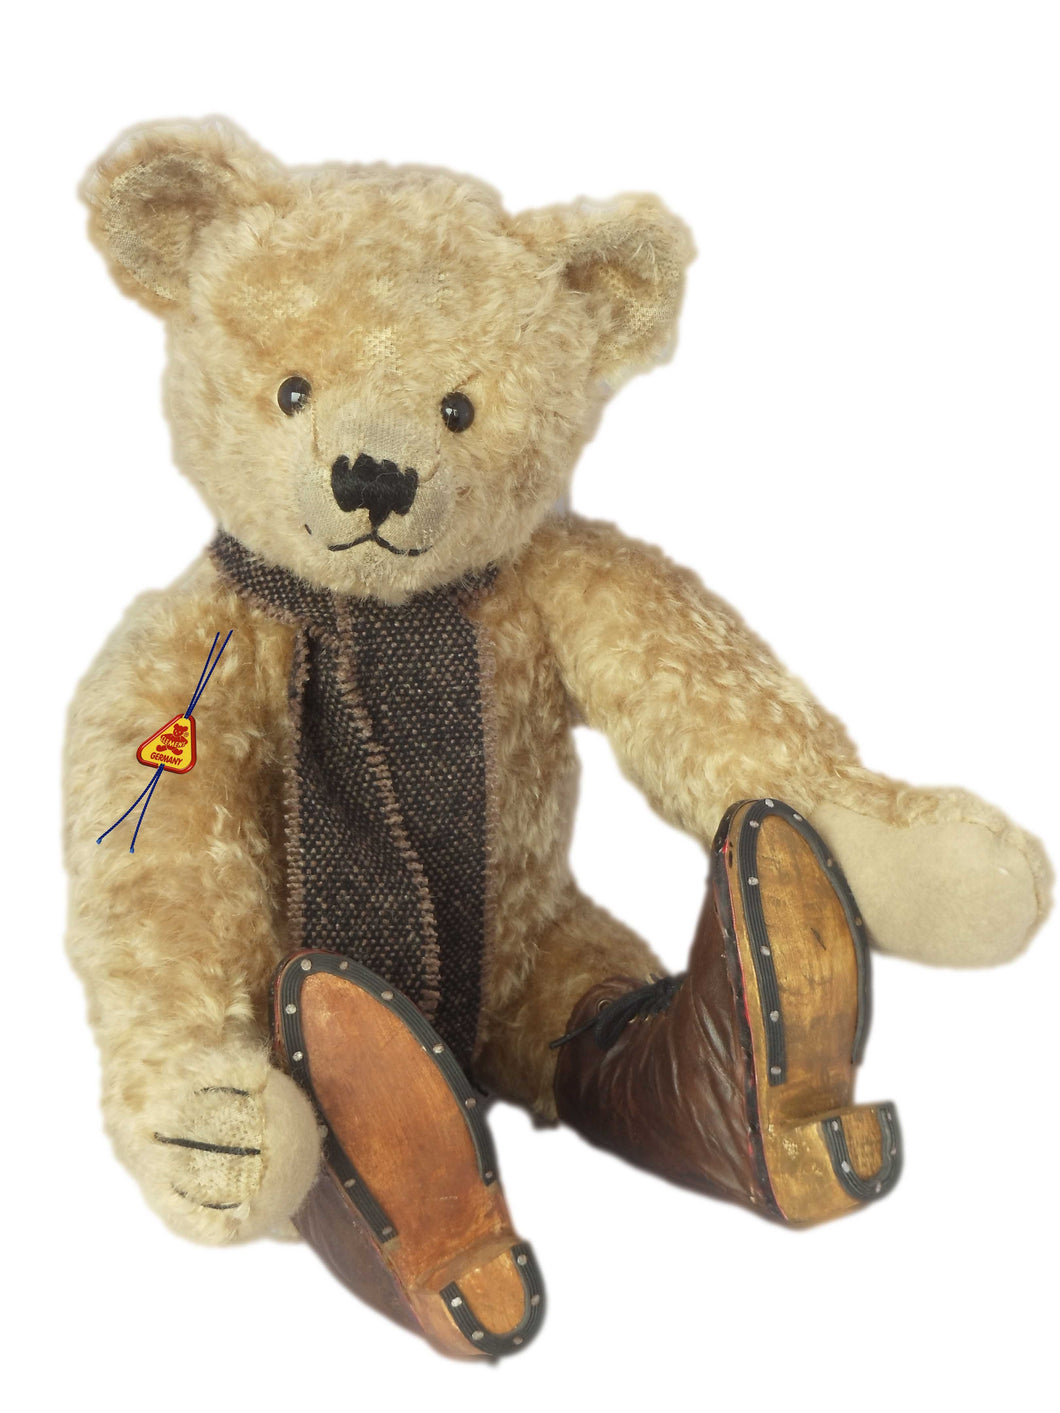 TEDDY PETER / CLEMENS 70TH ANNIVERSARY MOHAIR LIMITED BEAR